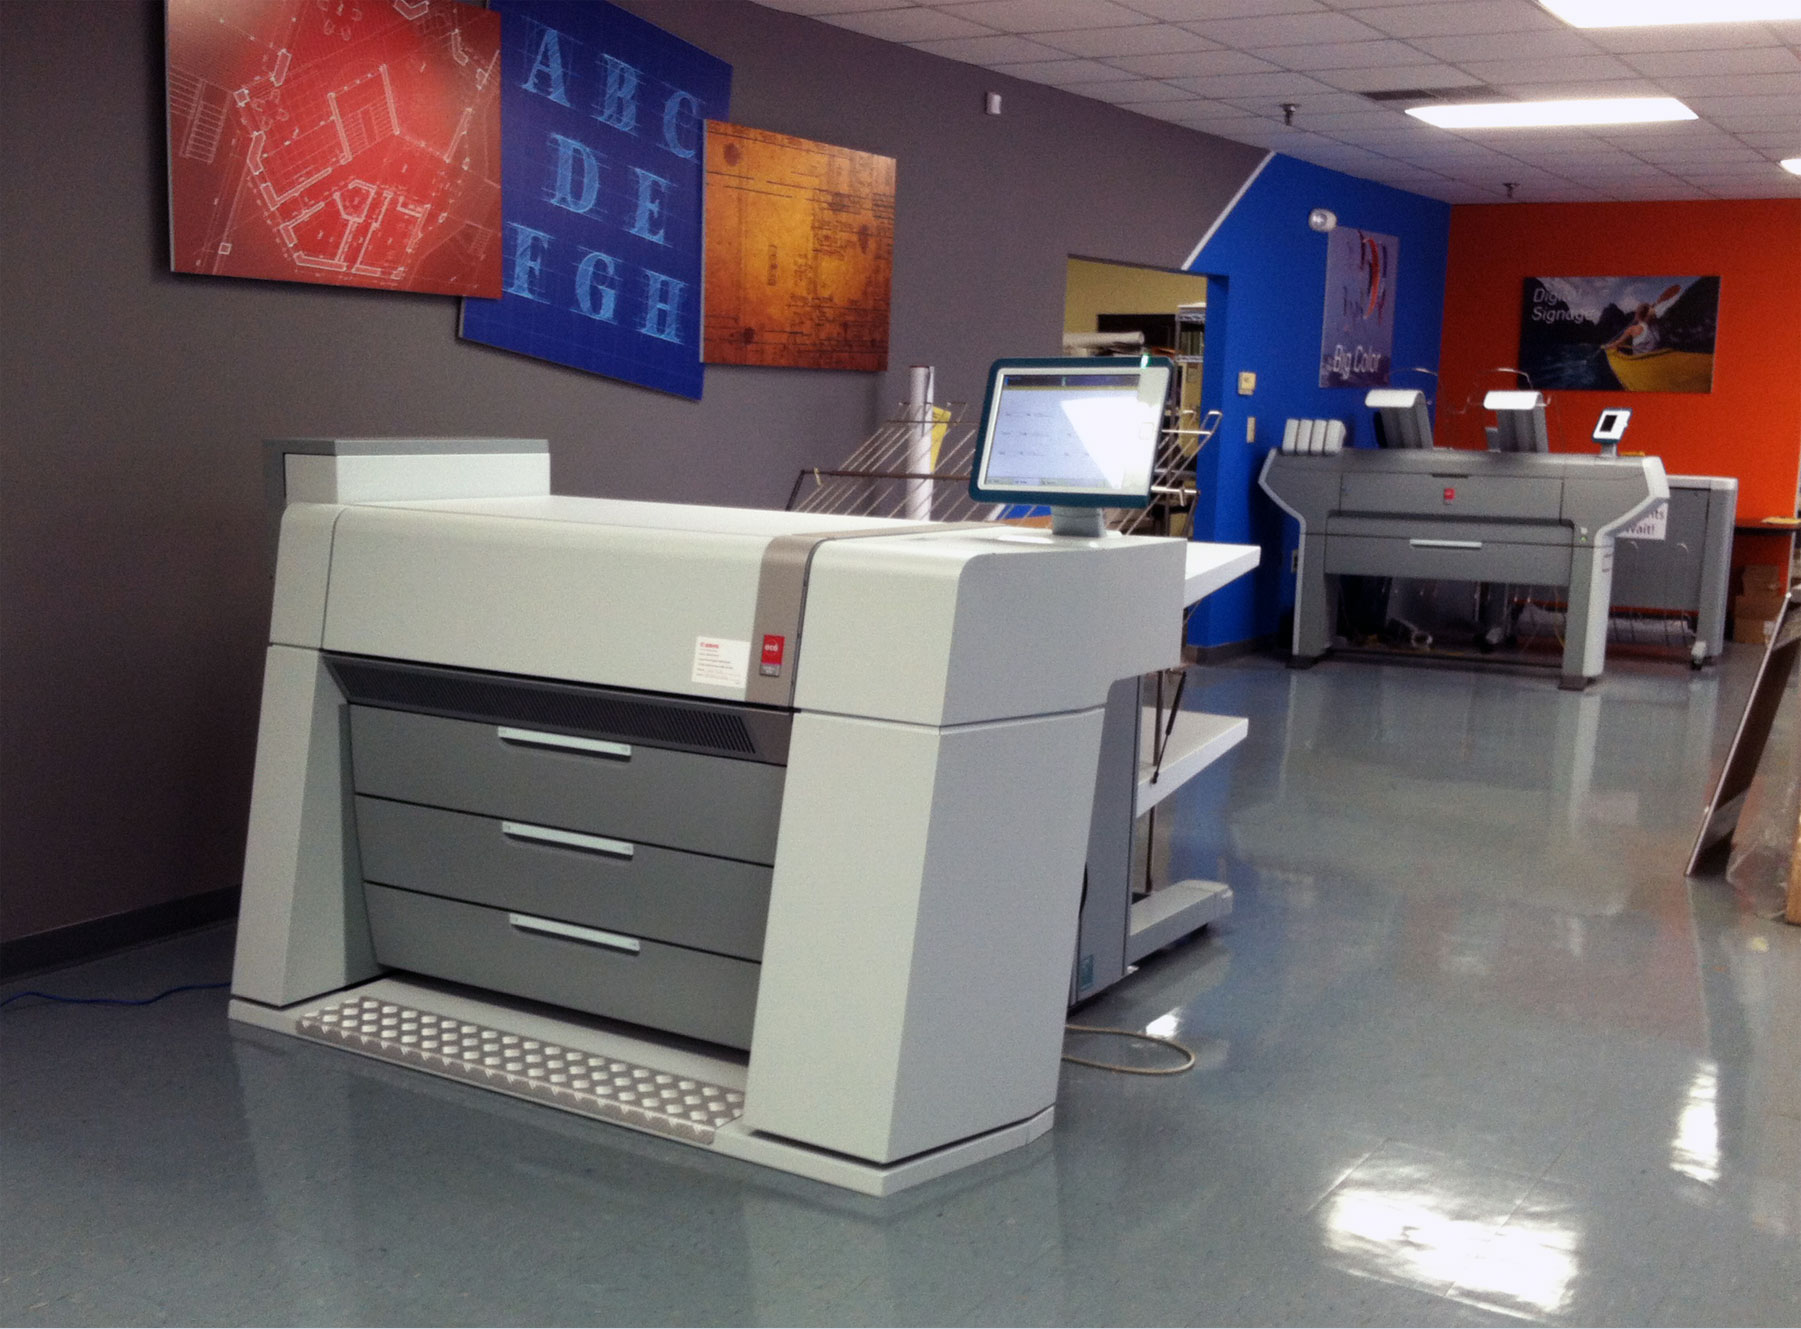 Busters reprographics printing graphics blueprints signs image malvernweather Image collections